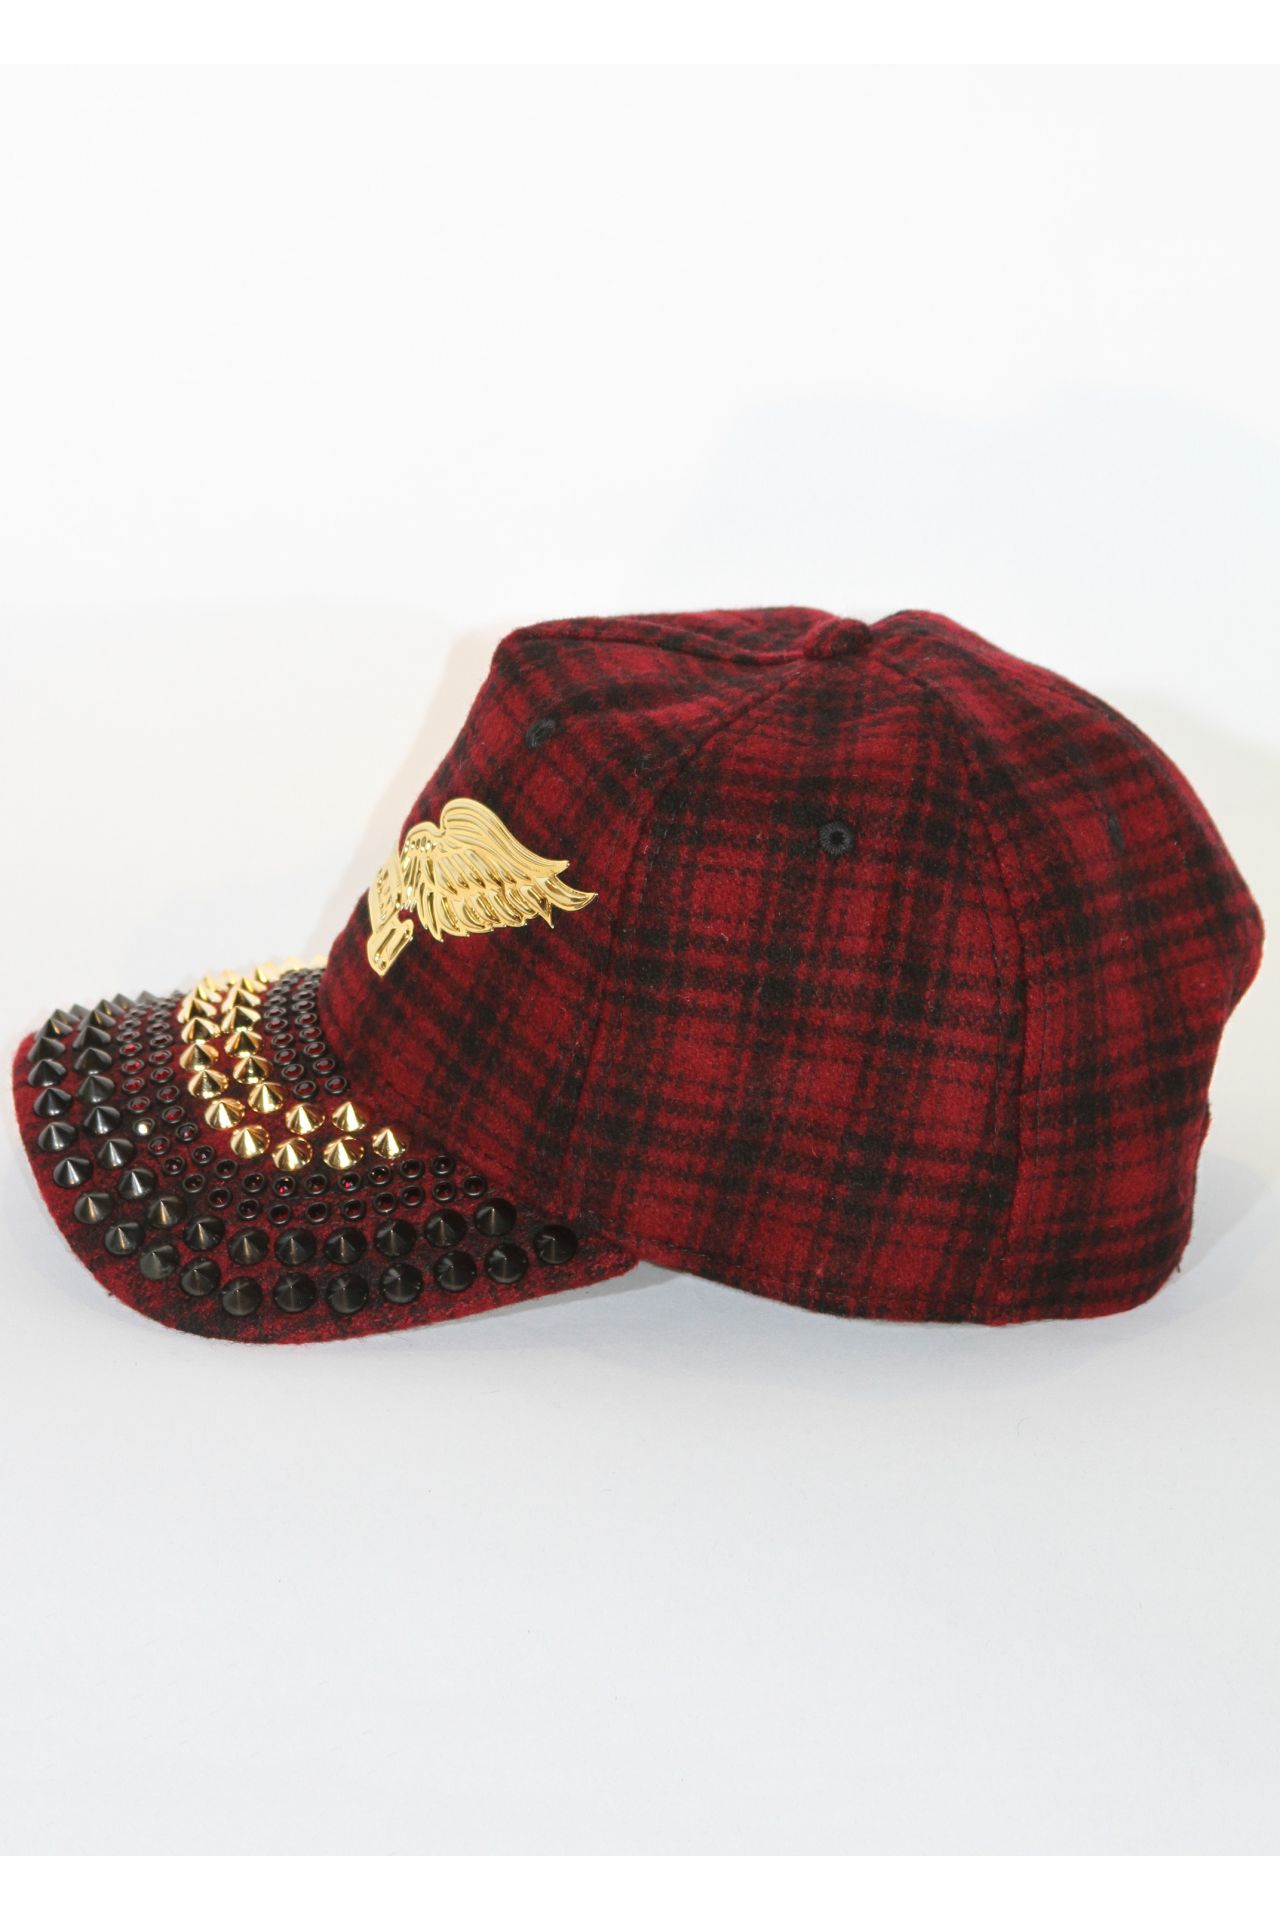 RED CAP WITH BLACK GARNET SW & GOLD SPIKES